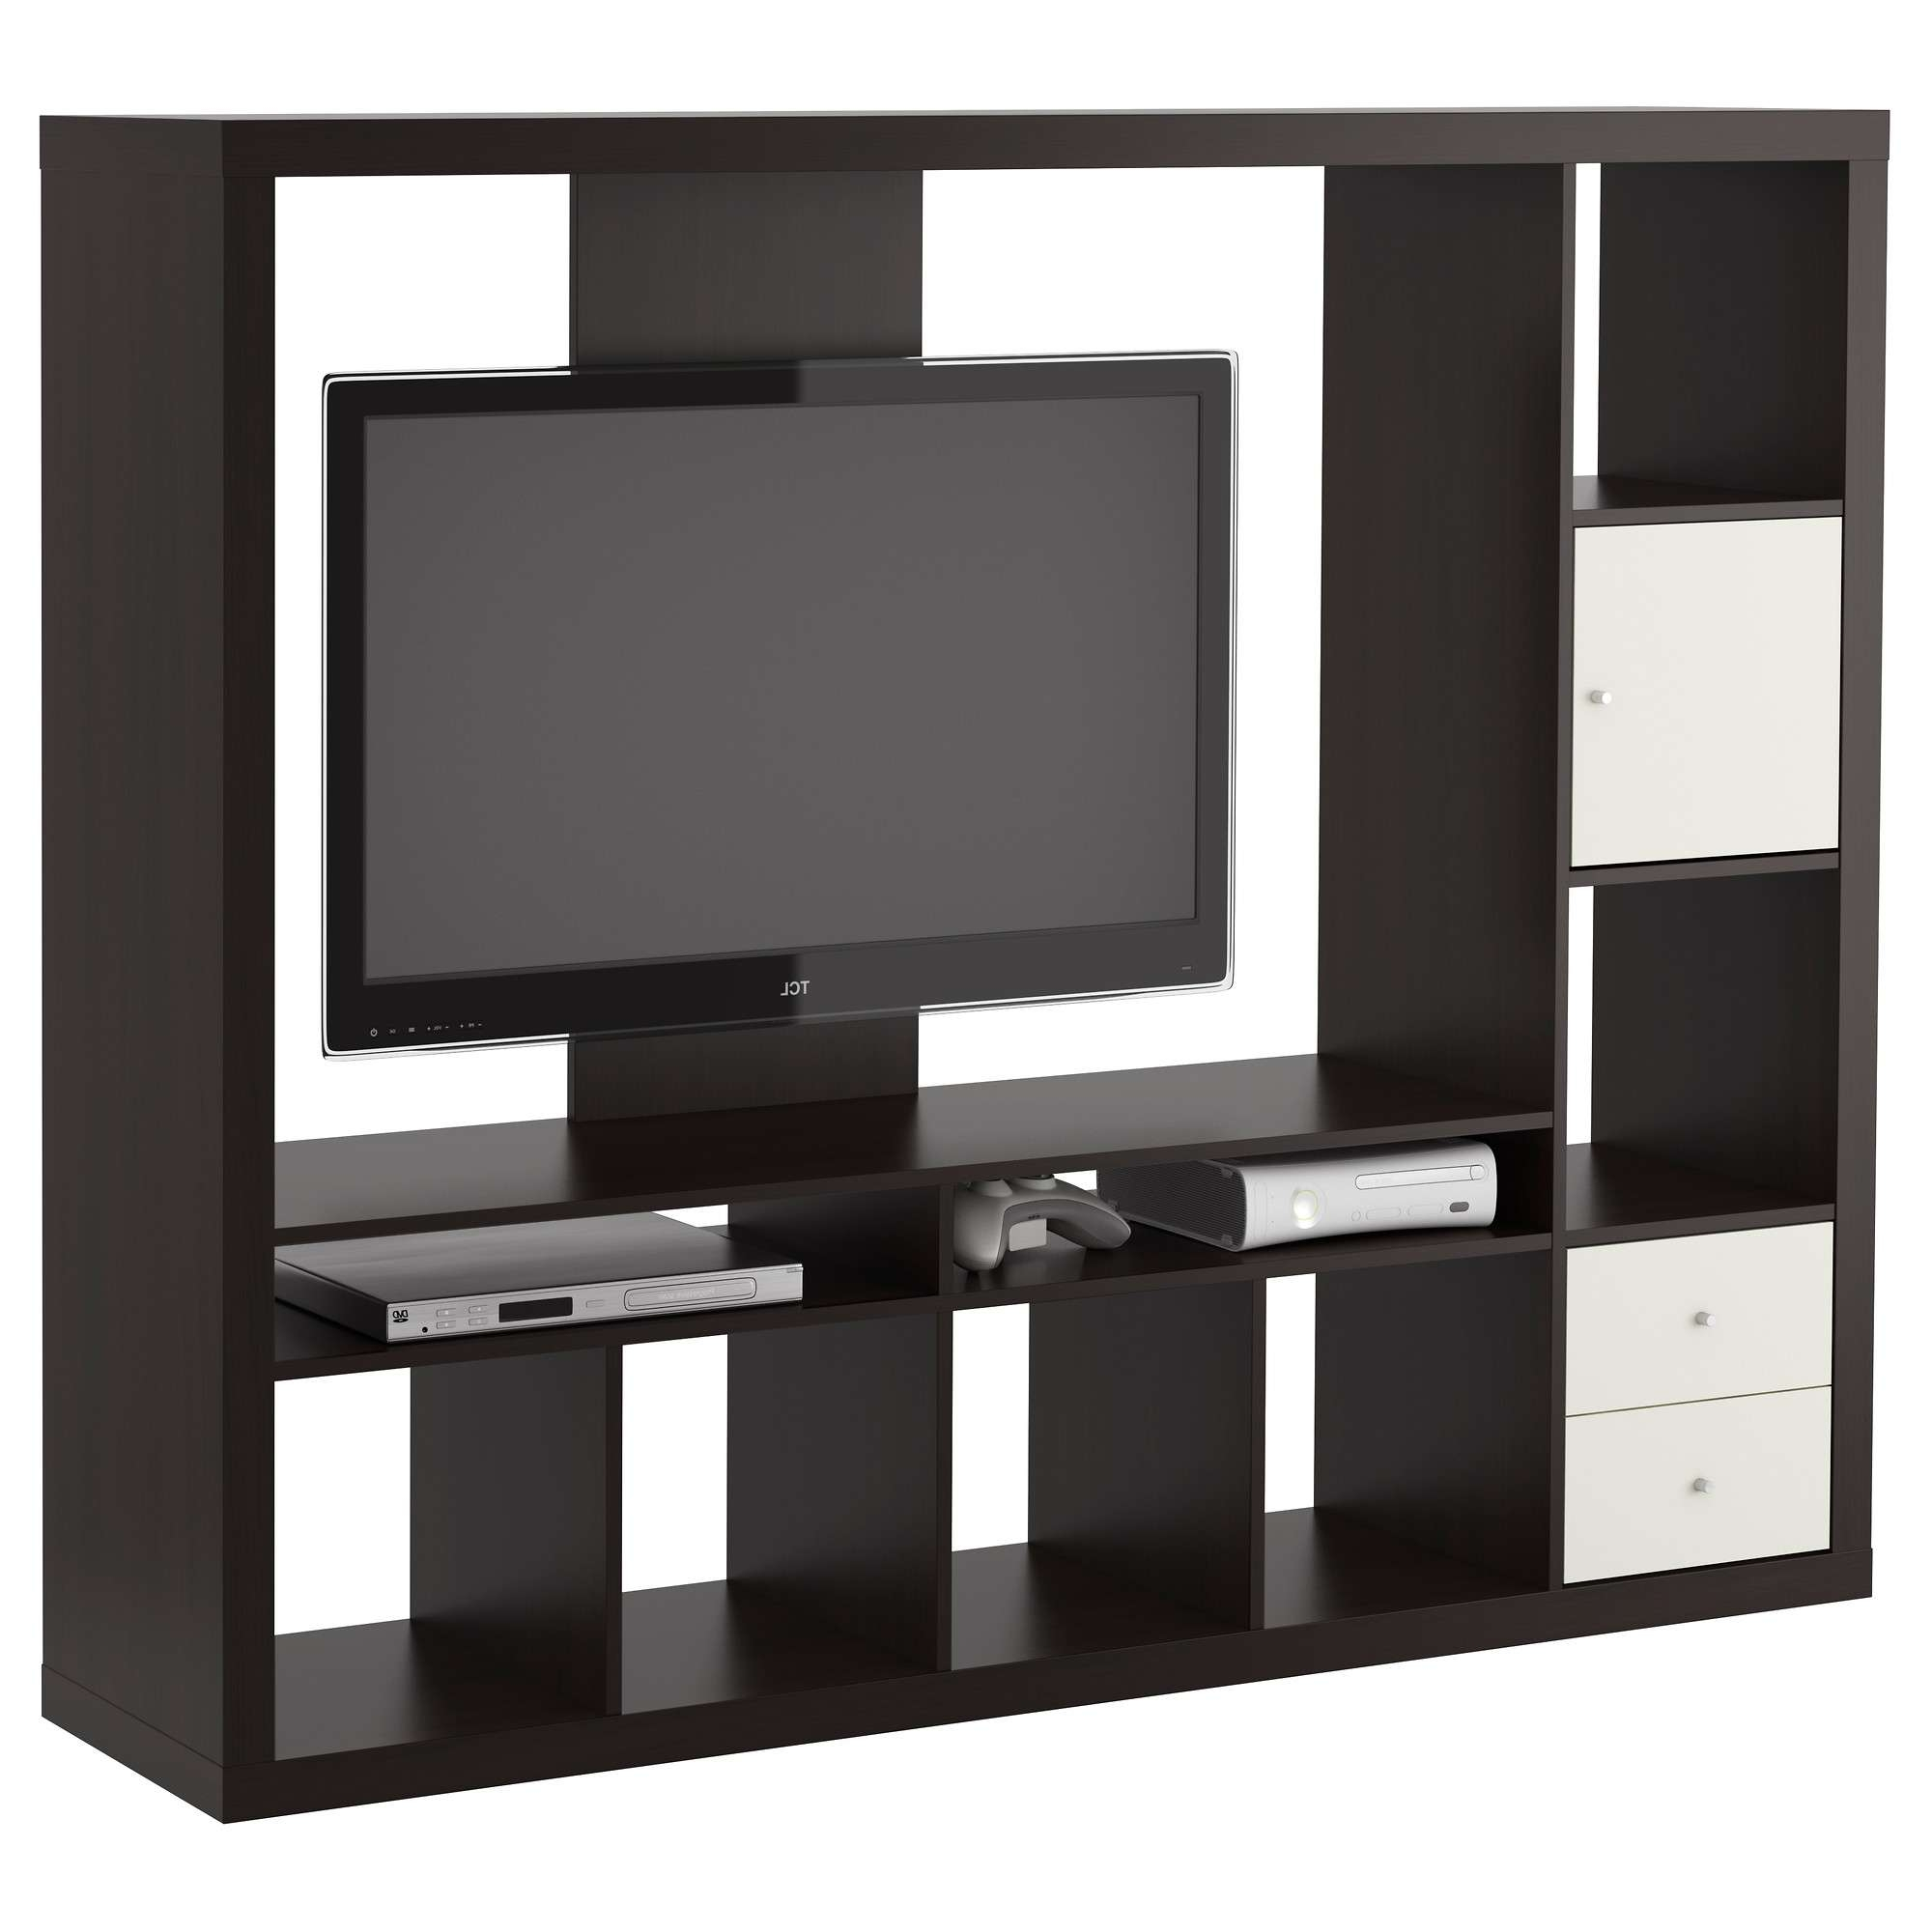 Square Black Shelving Units With White Wooden Drawers And With Regard To Square Tv Stands (View 13 of 15)